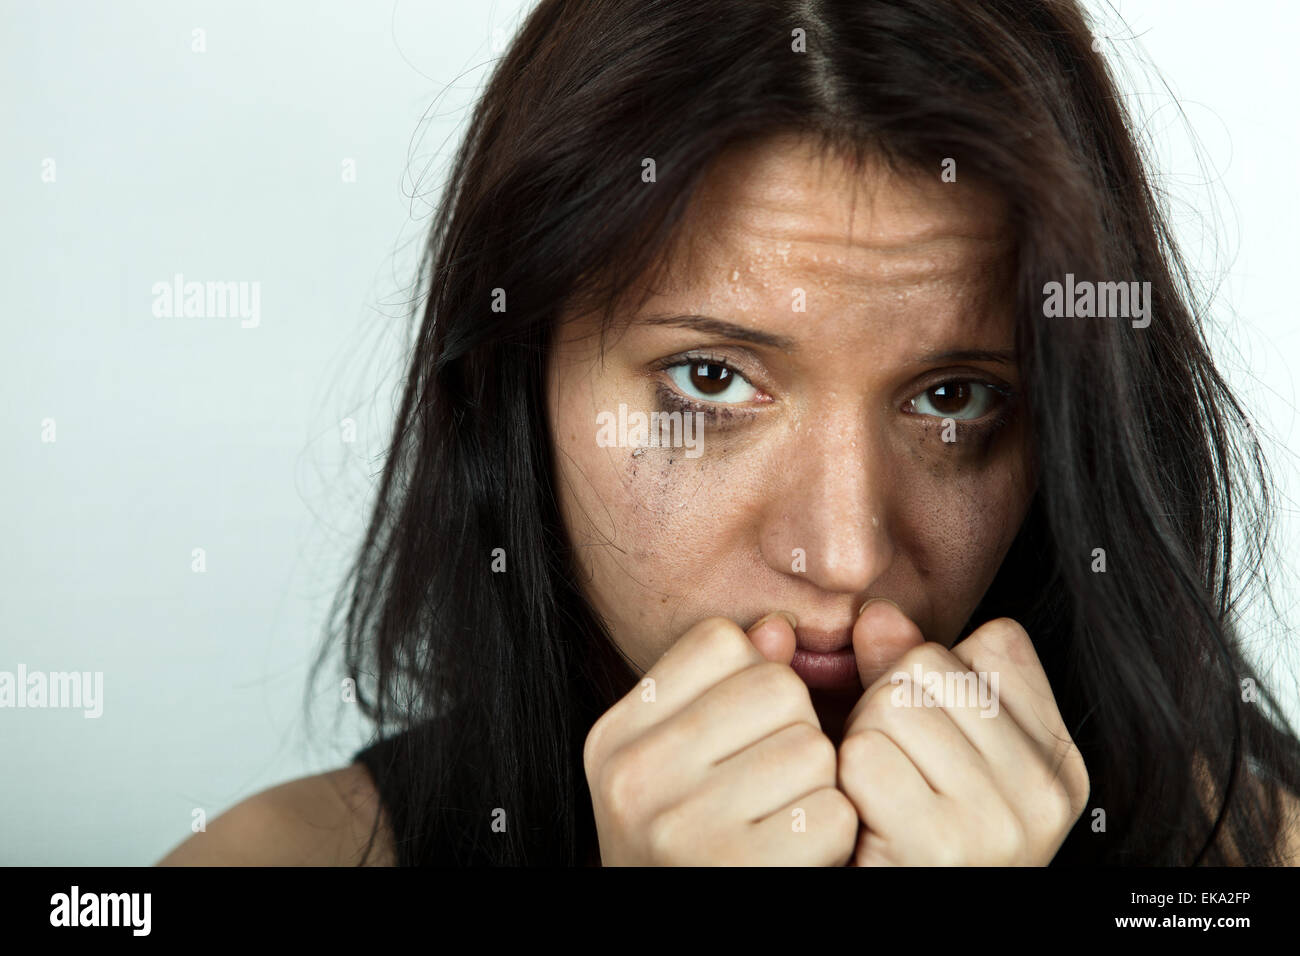 crying young woman - Stock Image